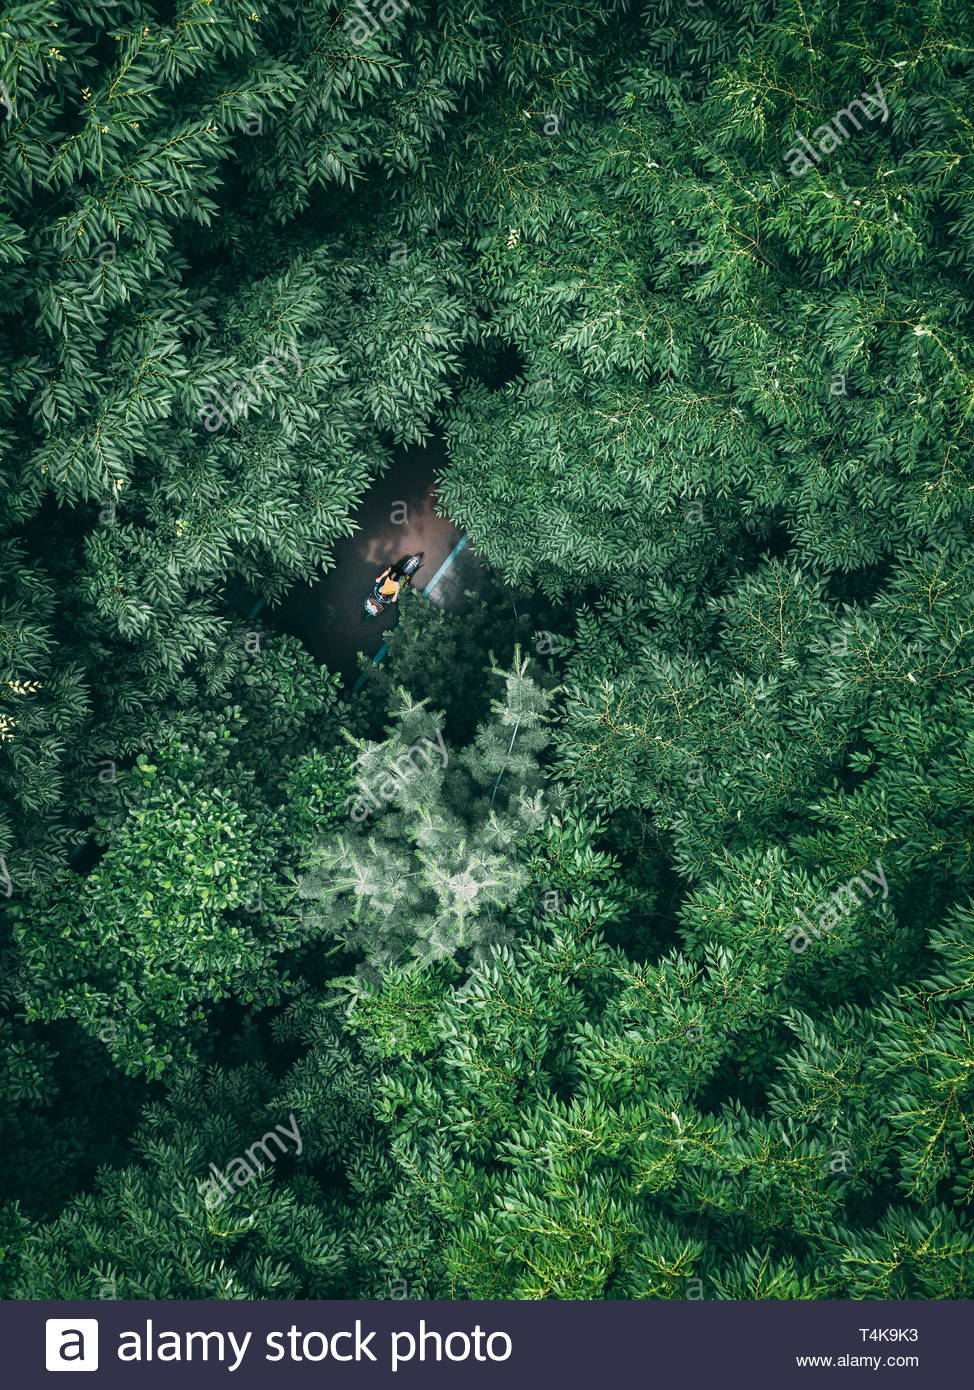 aerial photography of trees - Stock Image